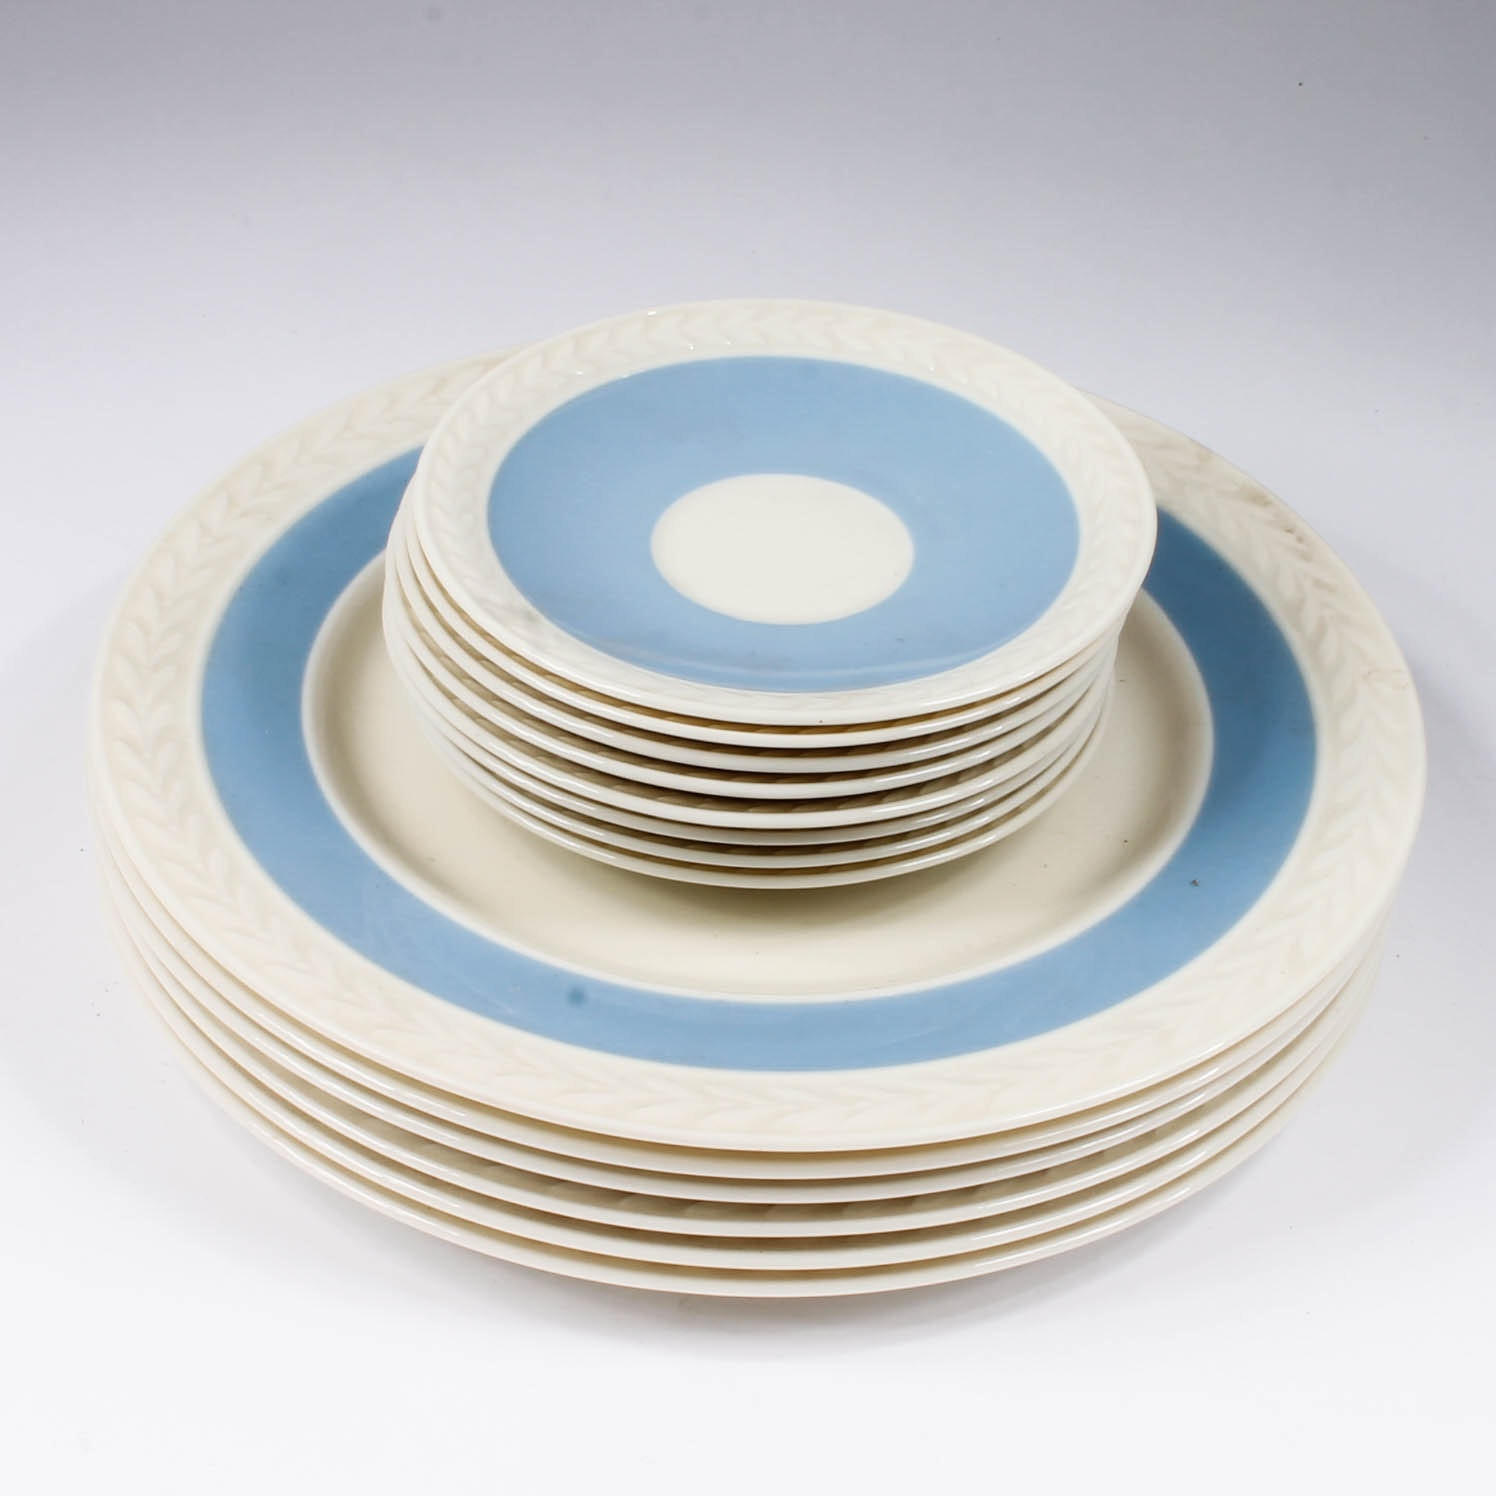 Collection of Blue and White Lenox Plates